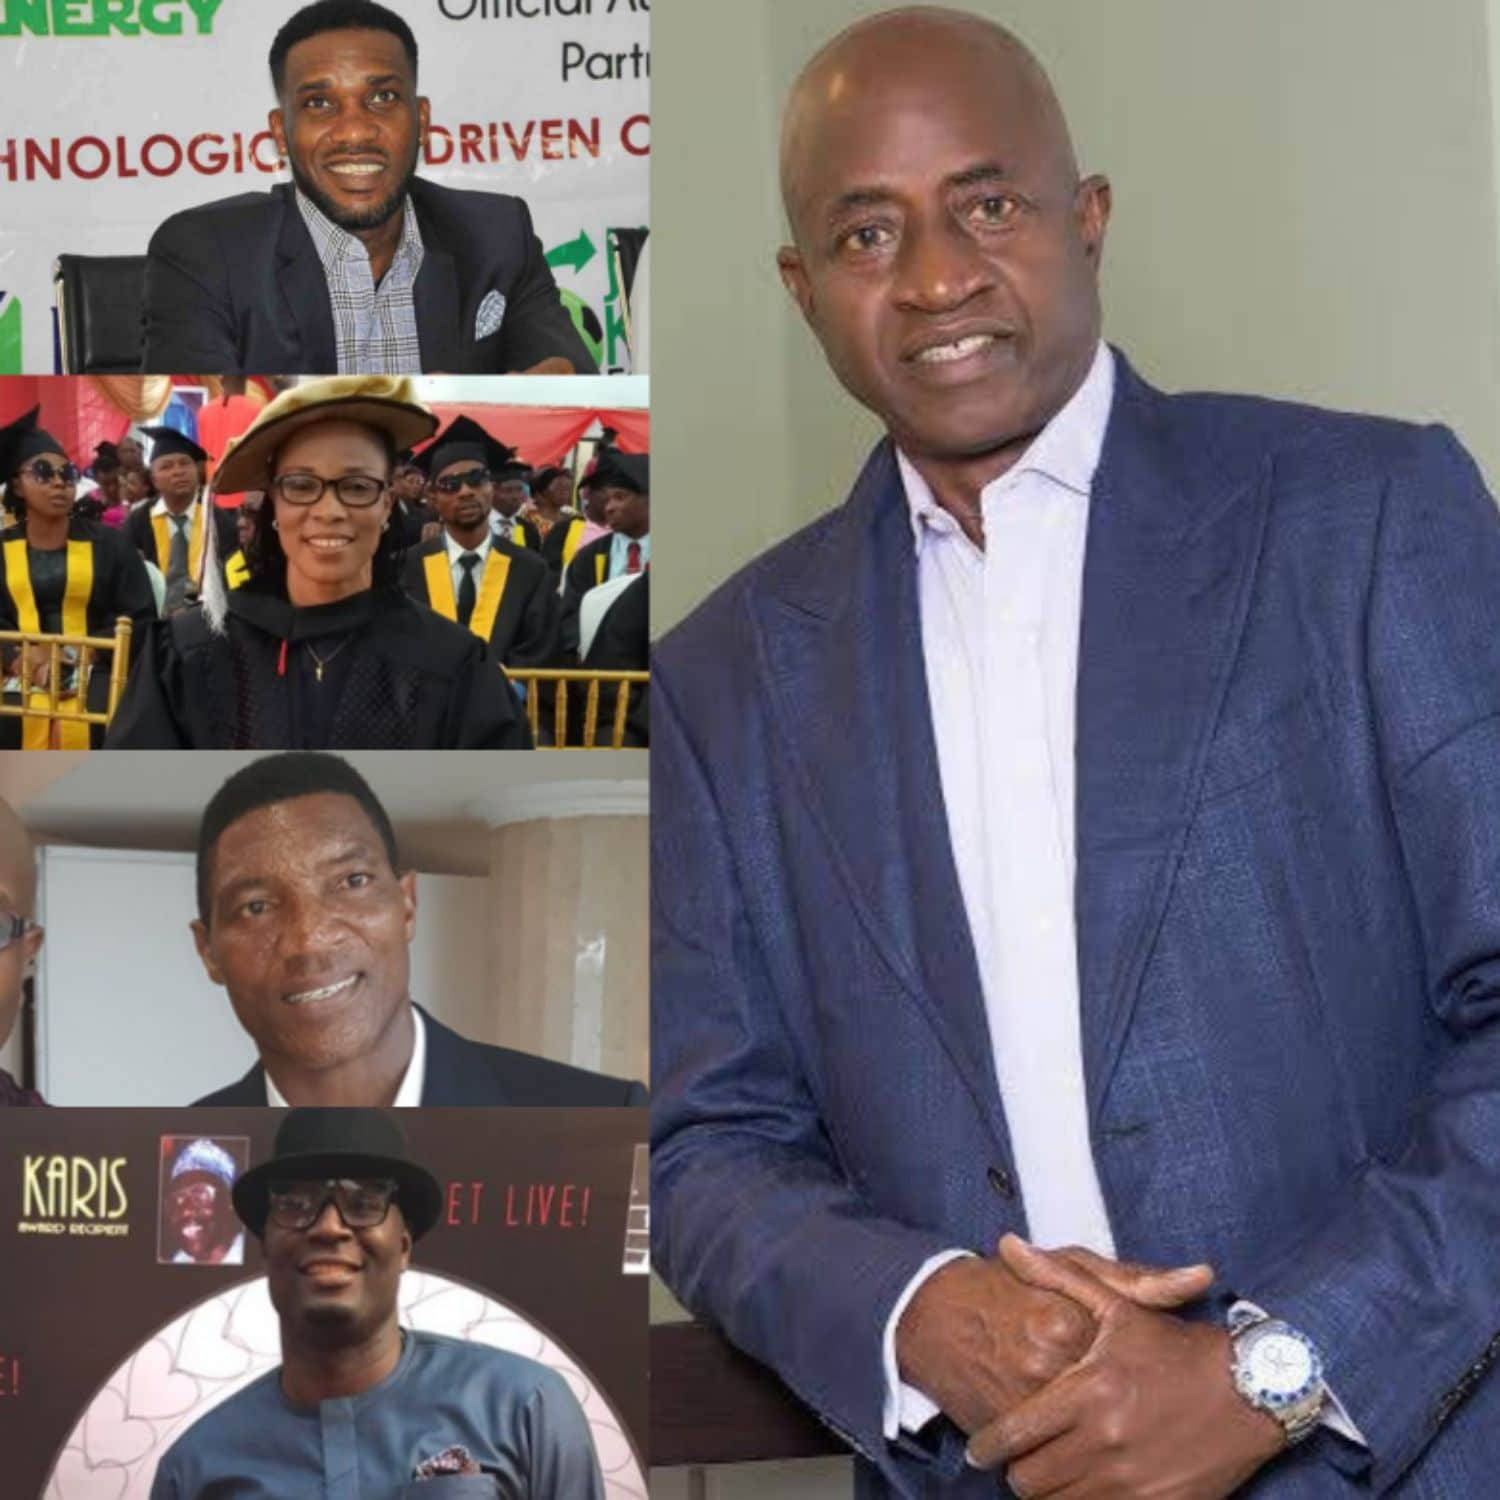 Odegbami: The Rise And Rise Of the Power Of Athletes!